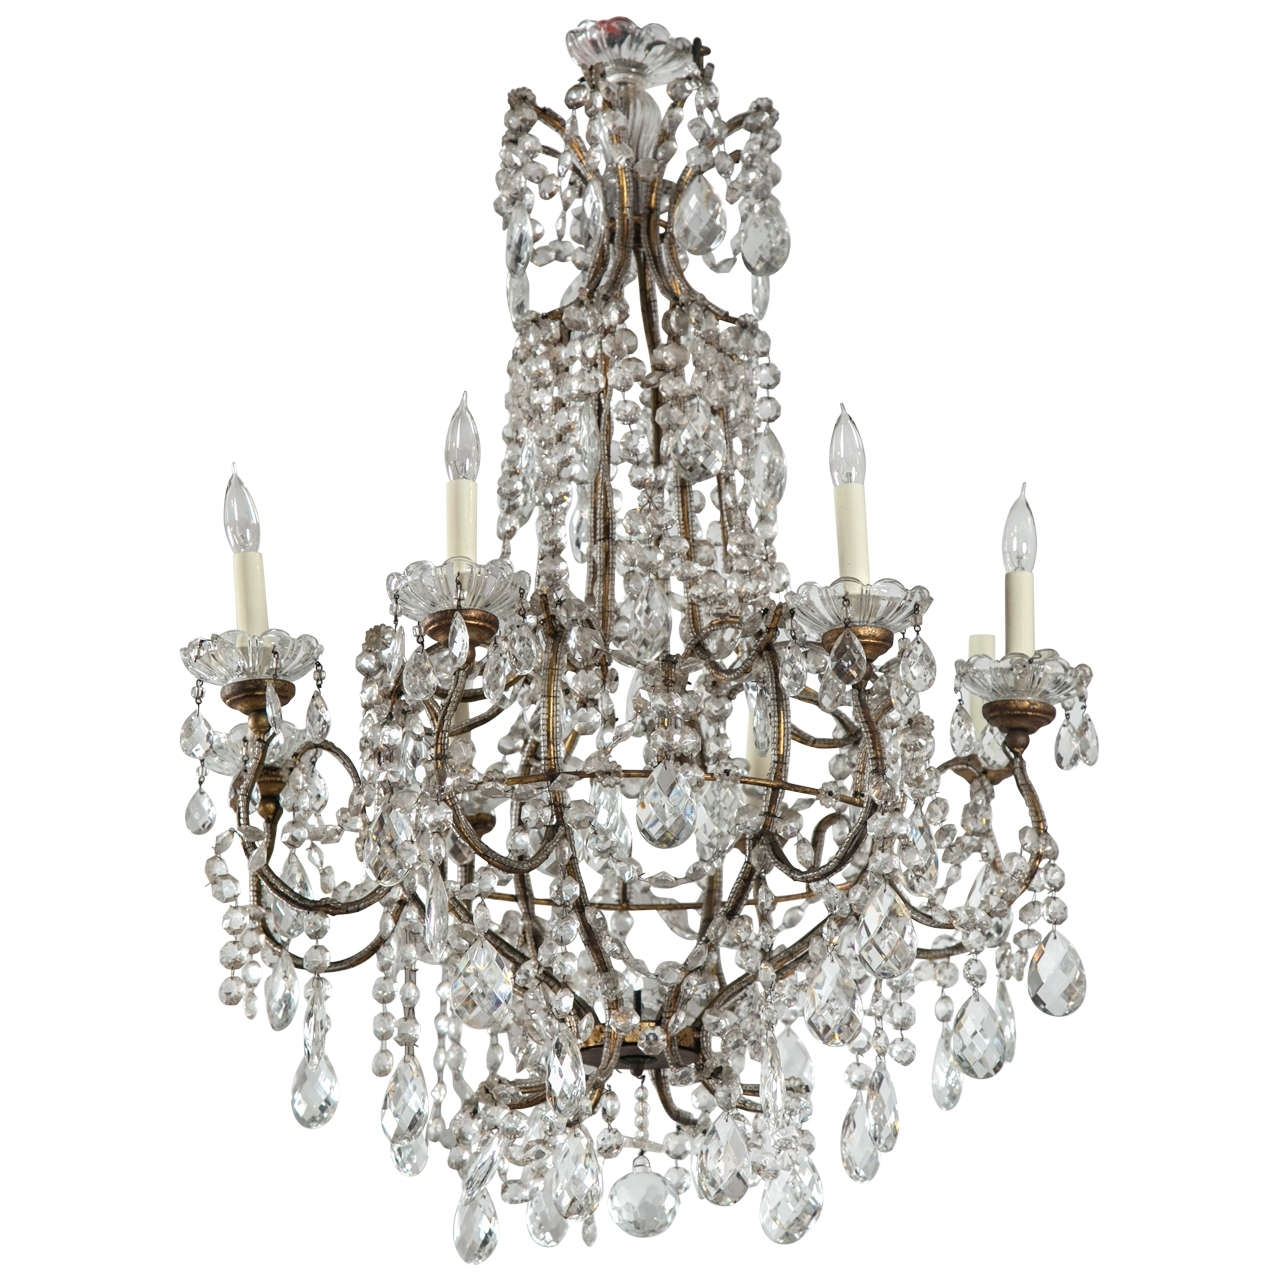 Most Popular French Style Chandeliers Delectable Crystal Modern Iron Shabby Chic Throughout Vintage French Chandeliers (View 14 of 20)